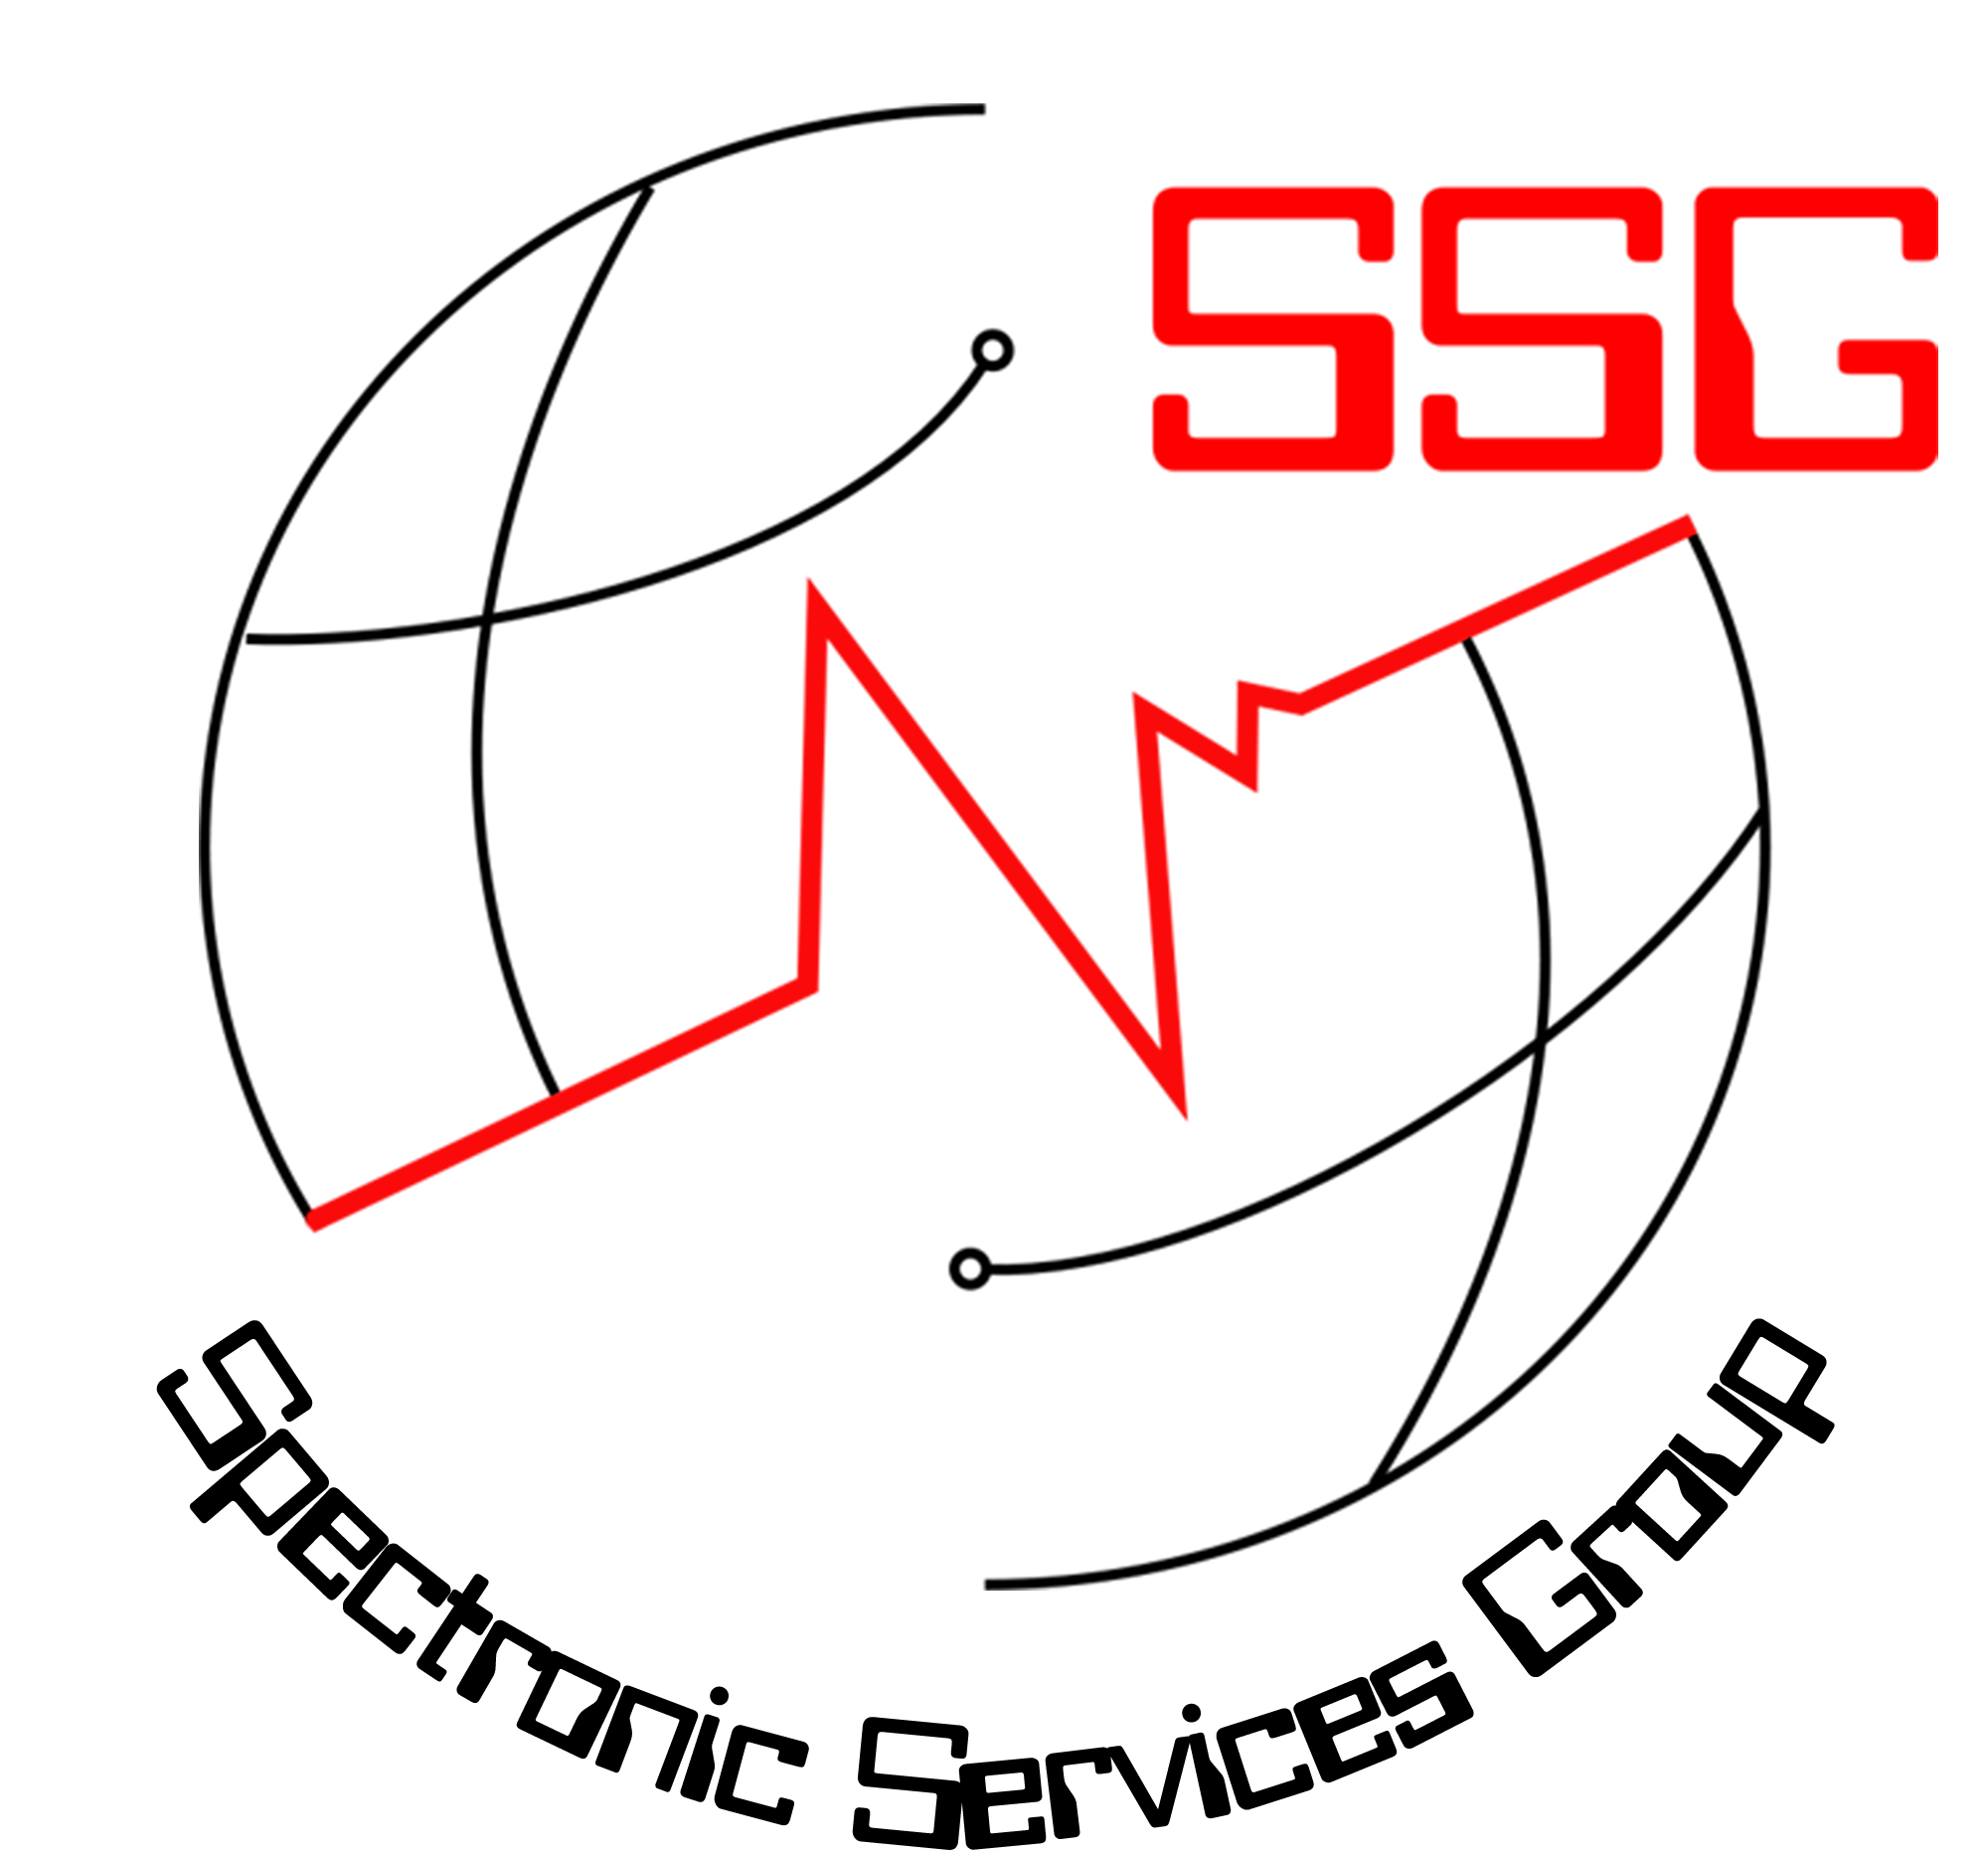 Spectronic Services Group